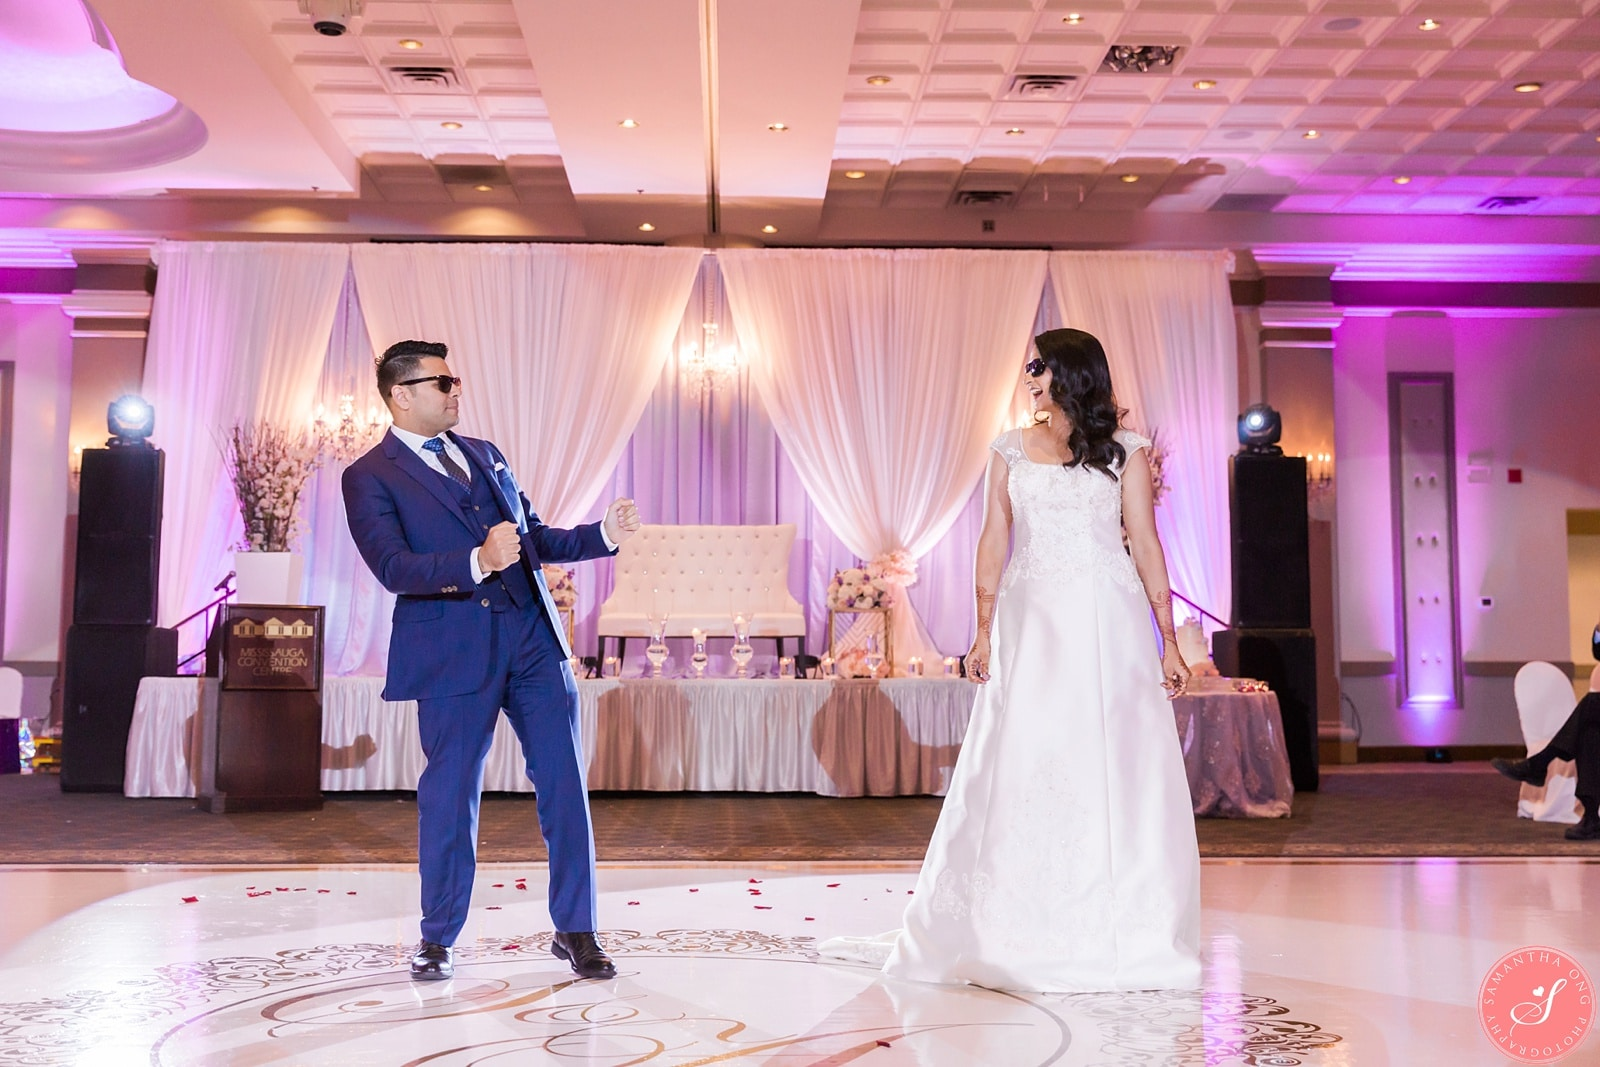 Wedding Photographer Samantha Ong Photography Ceremony Venue Unionville Jamatkhana Reception Mississauga Convention Centre Planner BeYOUtiful